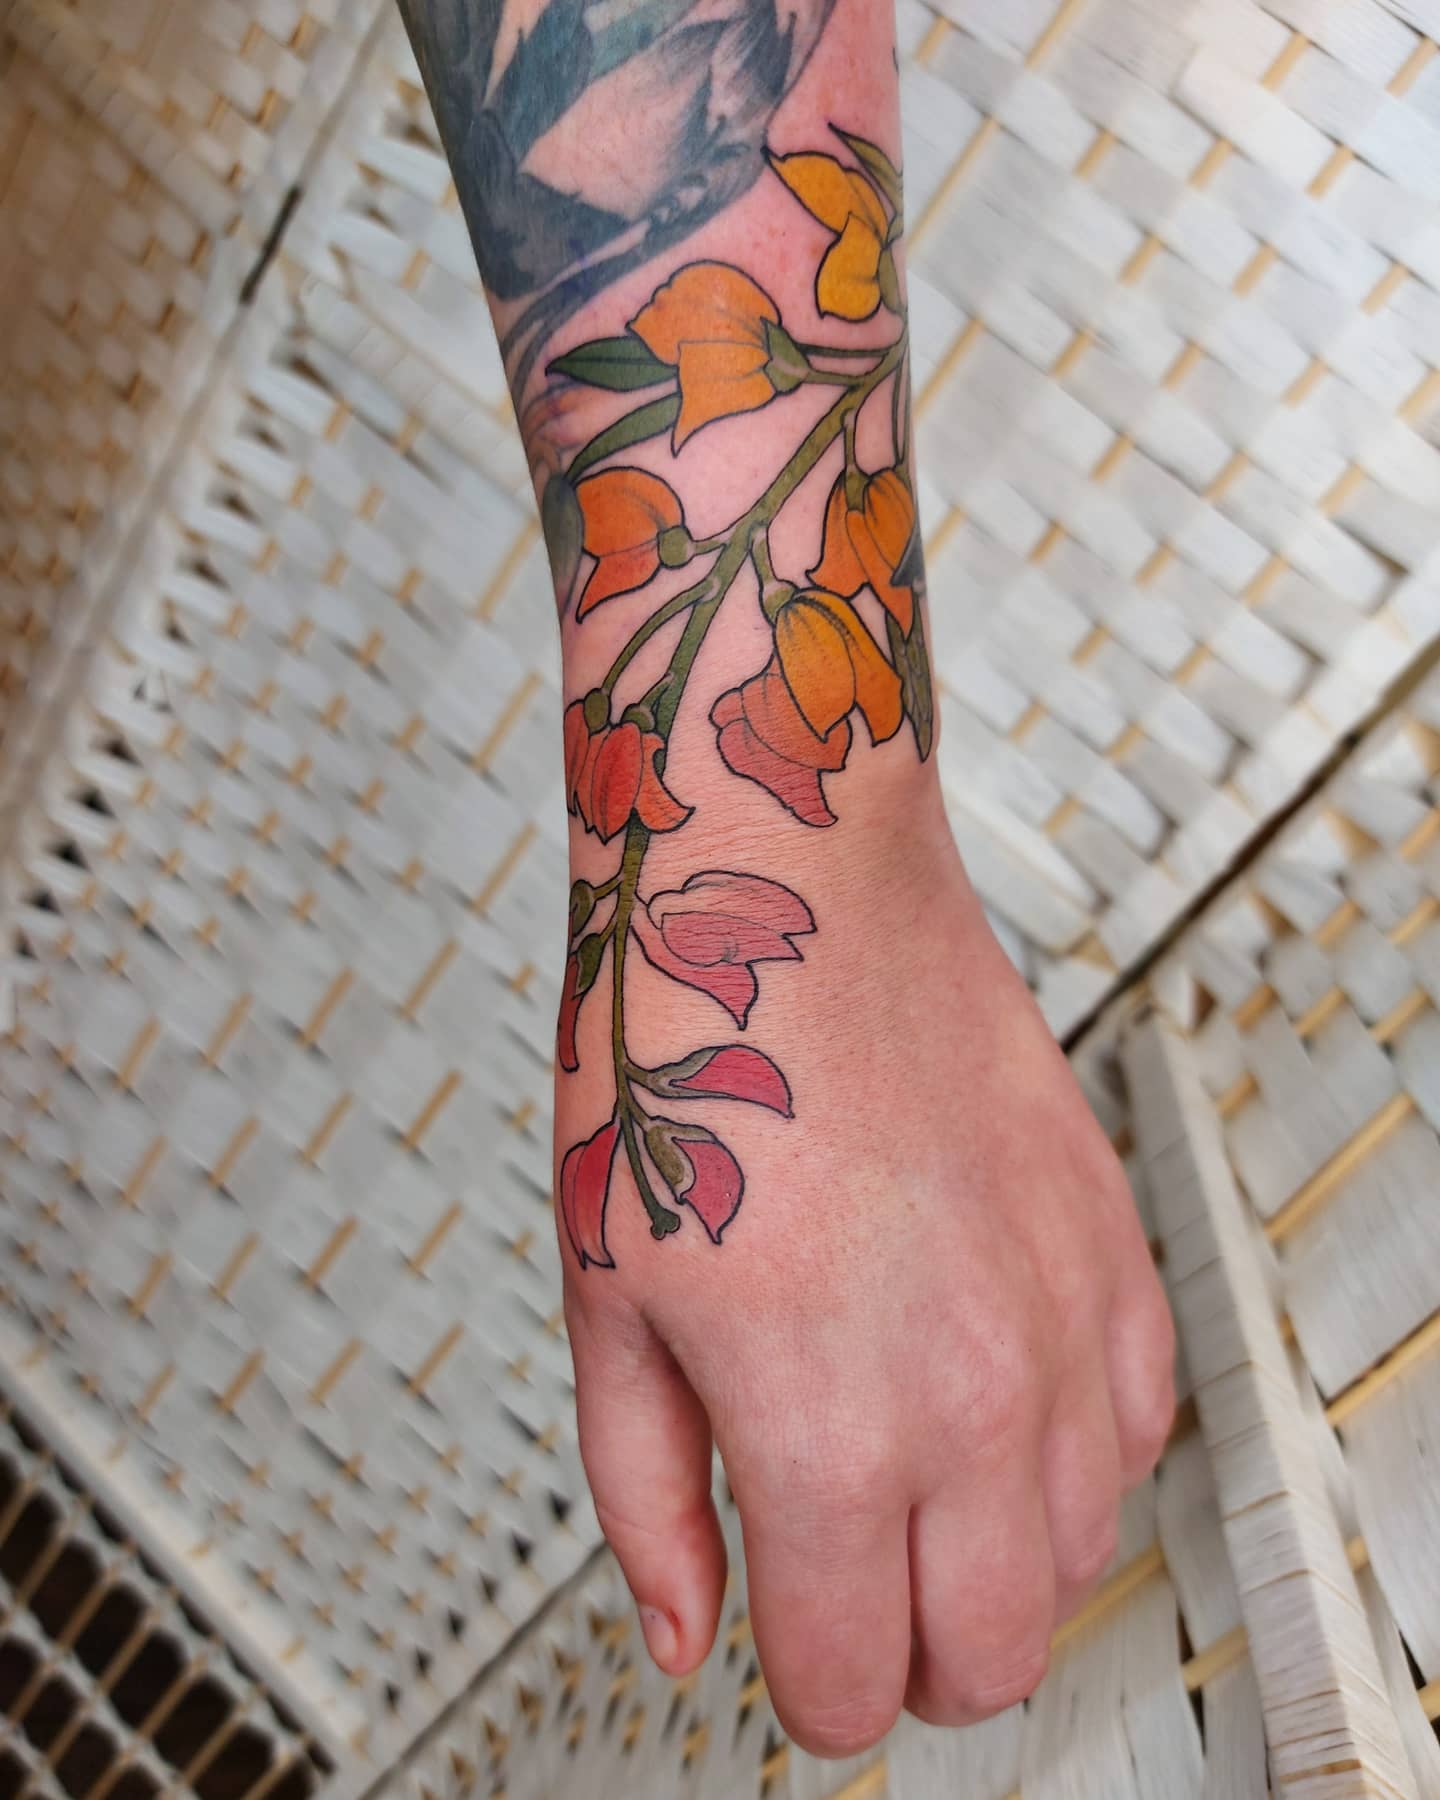 lucy-o-connell-tattoo-artist-hand-flowers-2